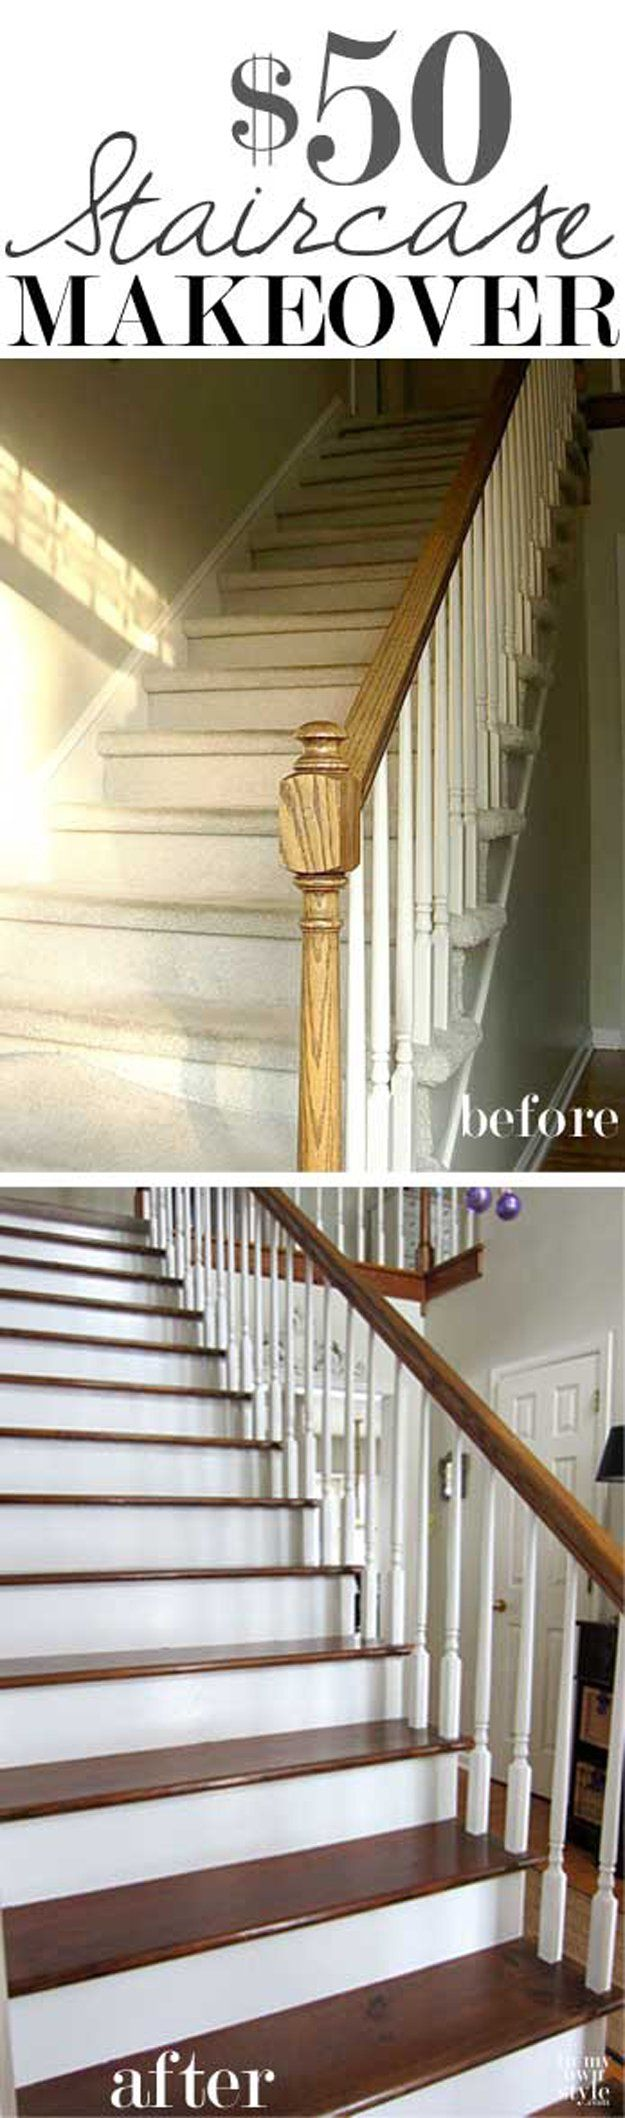 Easy DIY Home Improvement Projects DIYReady.com | Easy DIY Crafts, Fun  Projects,